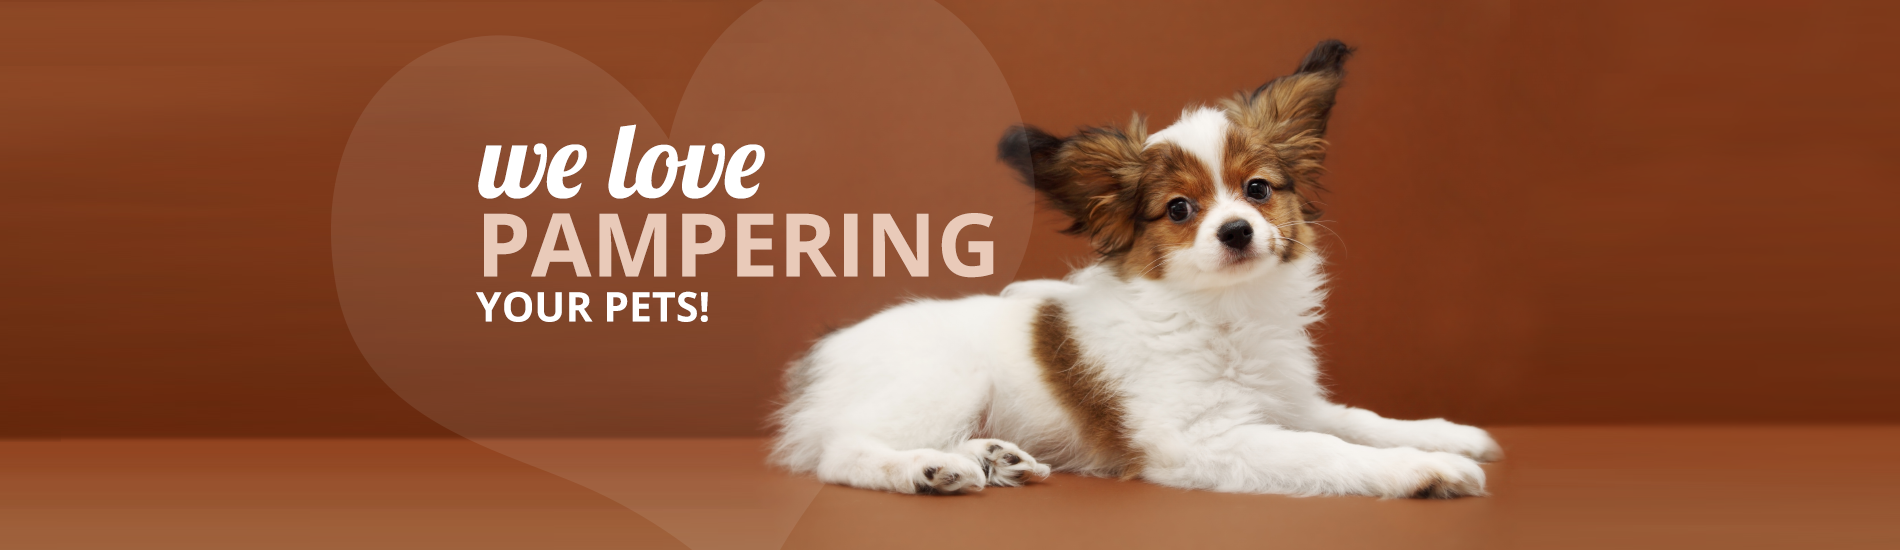 Calling All Paws | We Love Pampering Your Pets